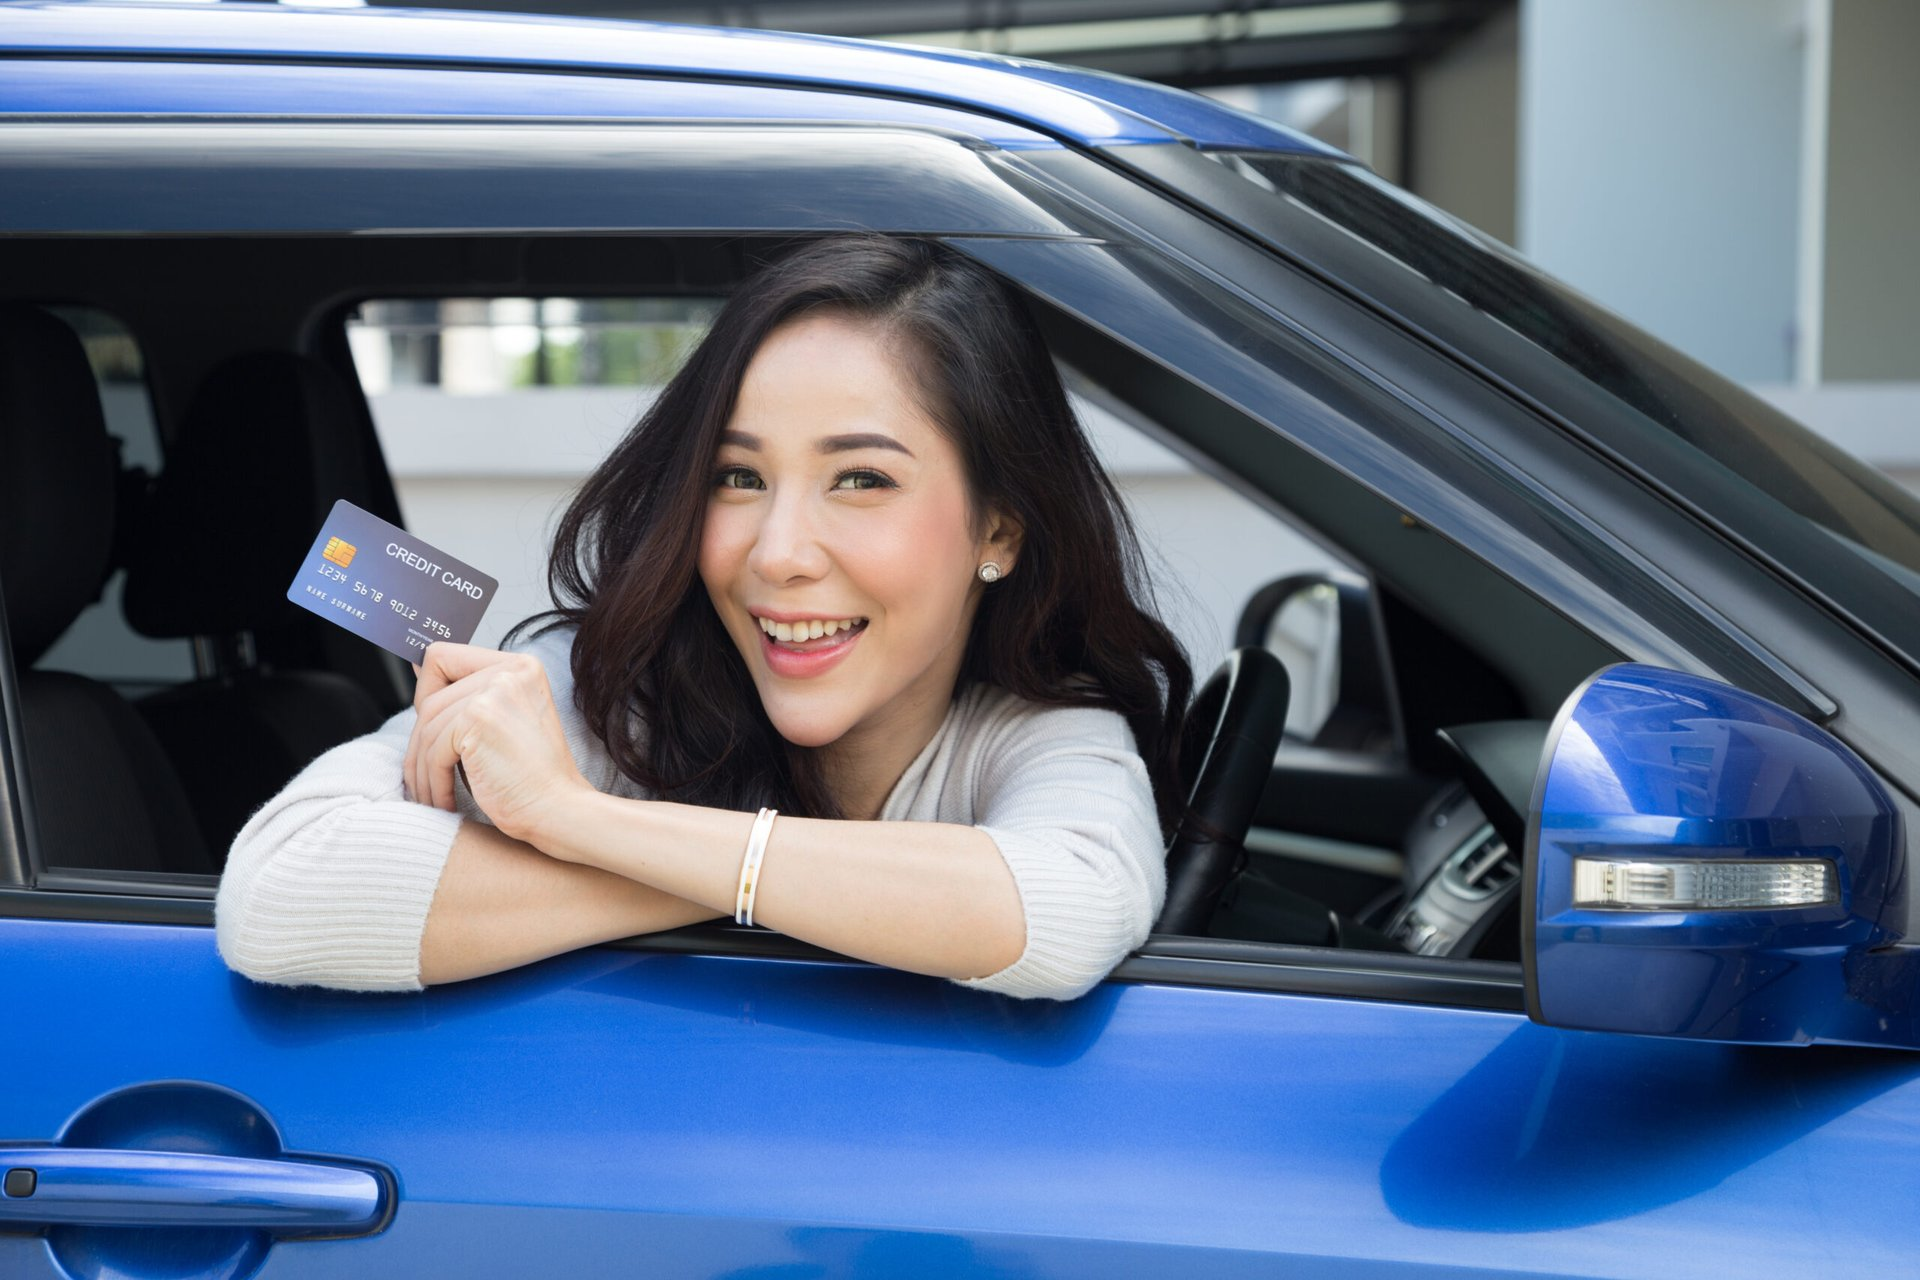 Woman in a car with a credit card